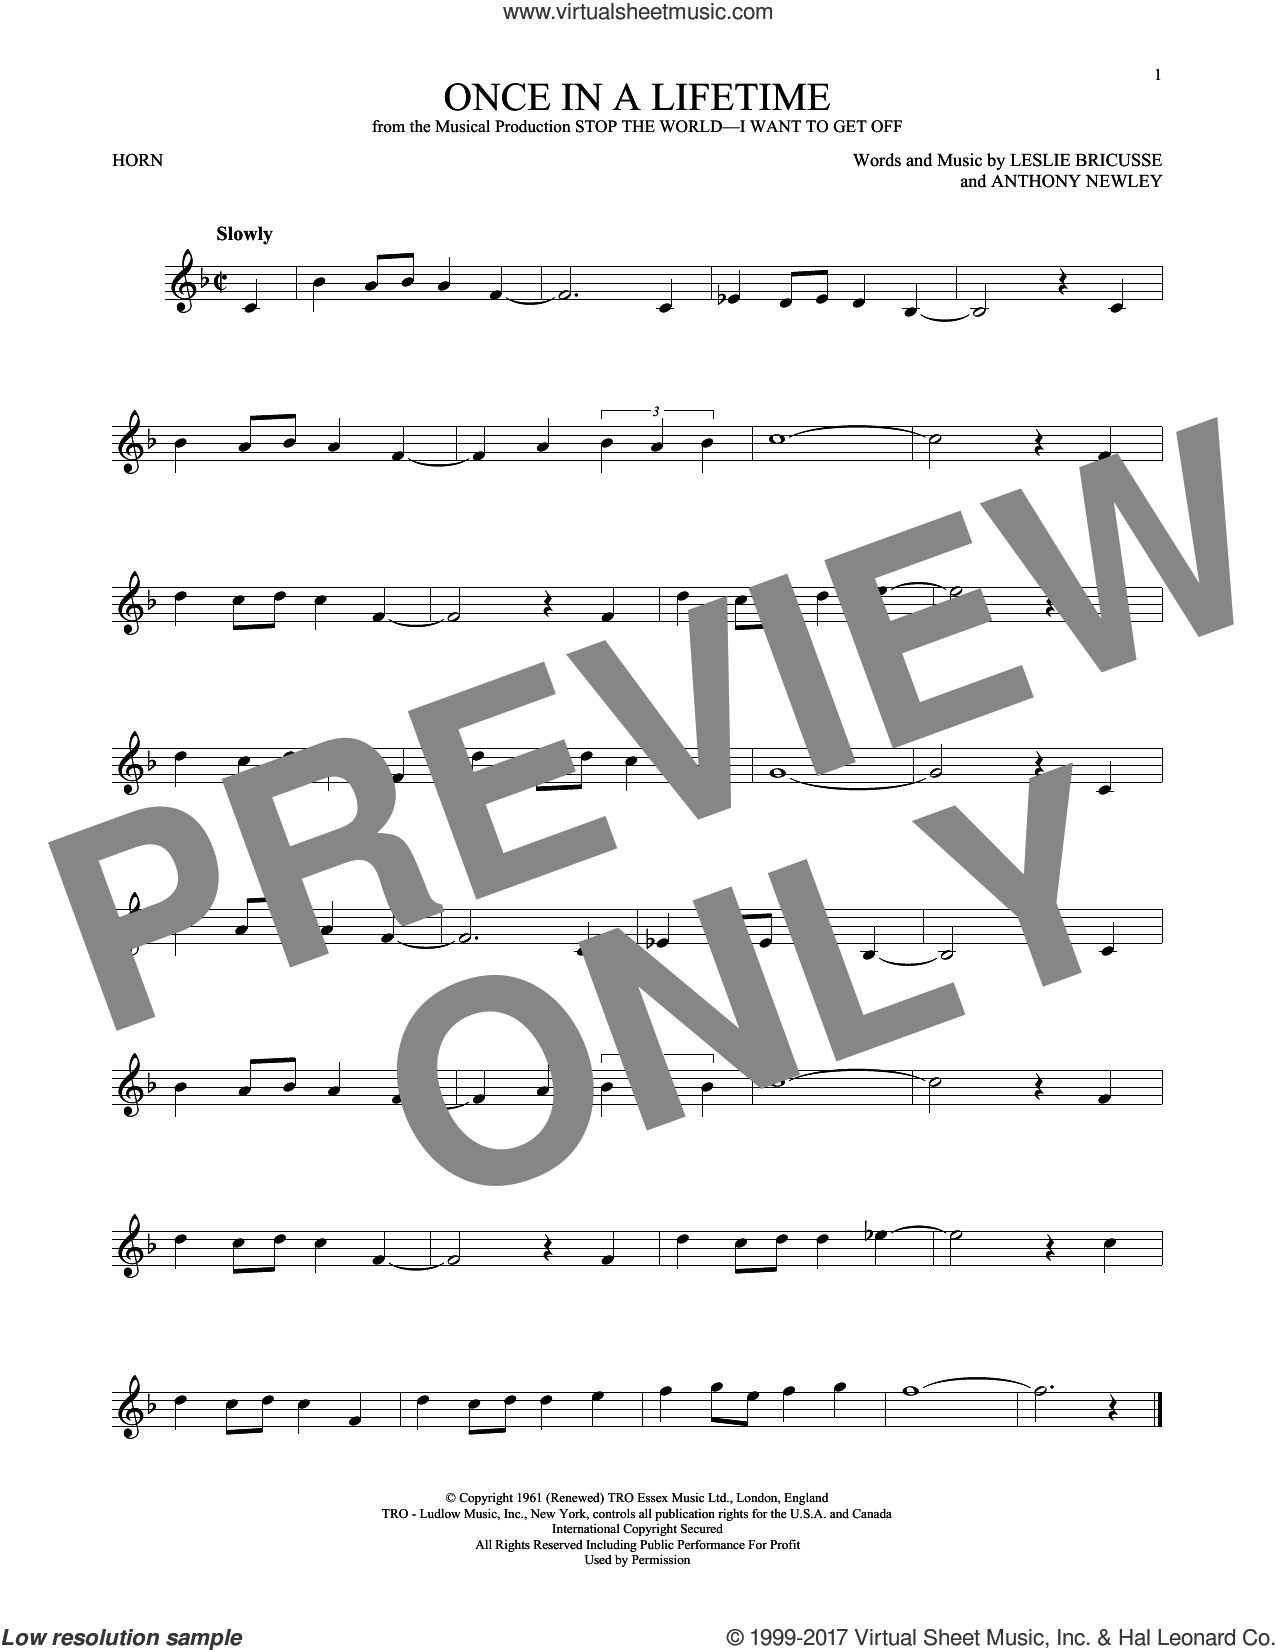 Once In A Lifetime sheet music for horn solo by Leslie Bricusse and Anthony Newley, intermediate skill level